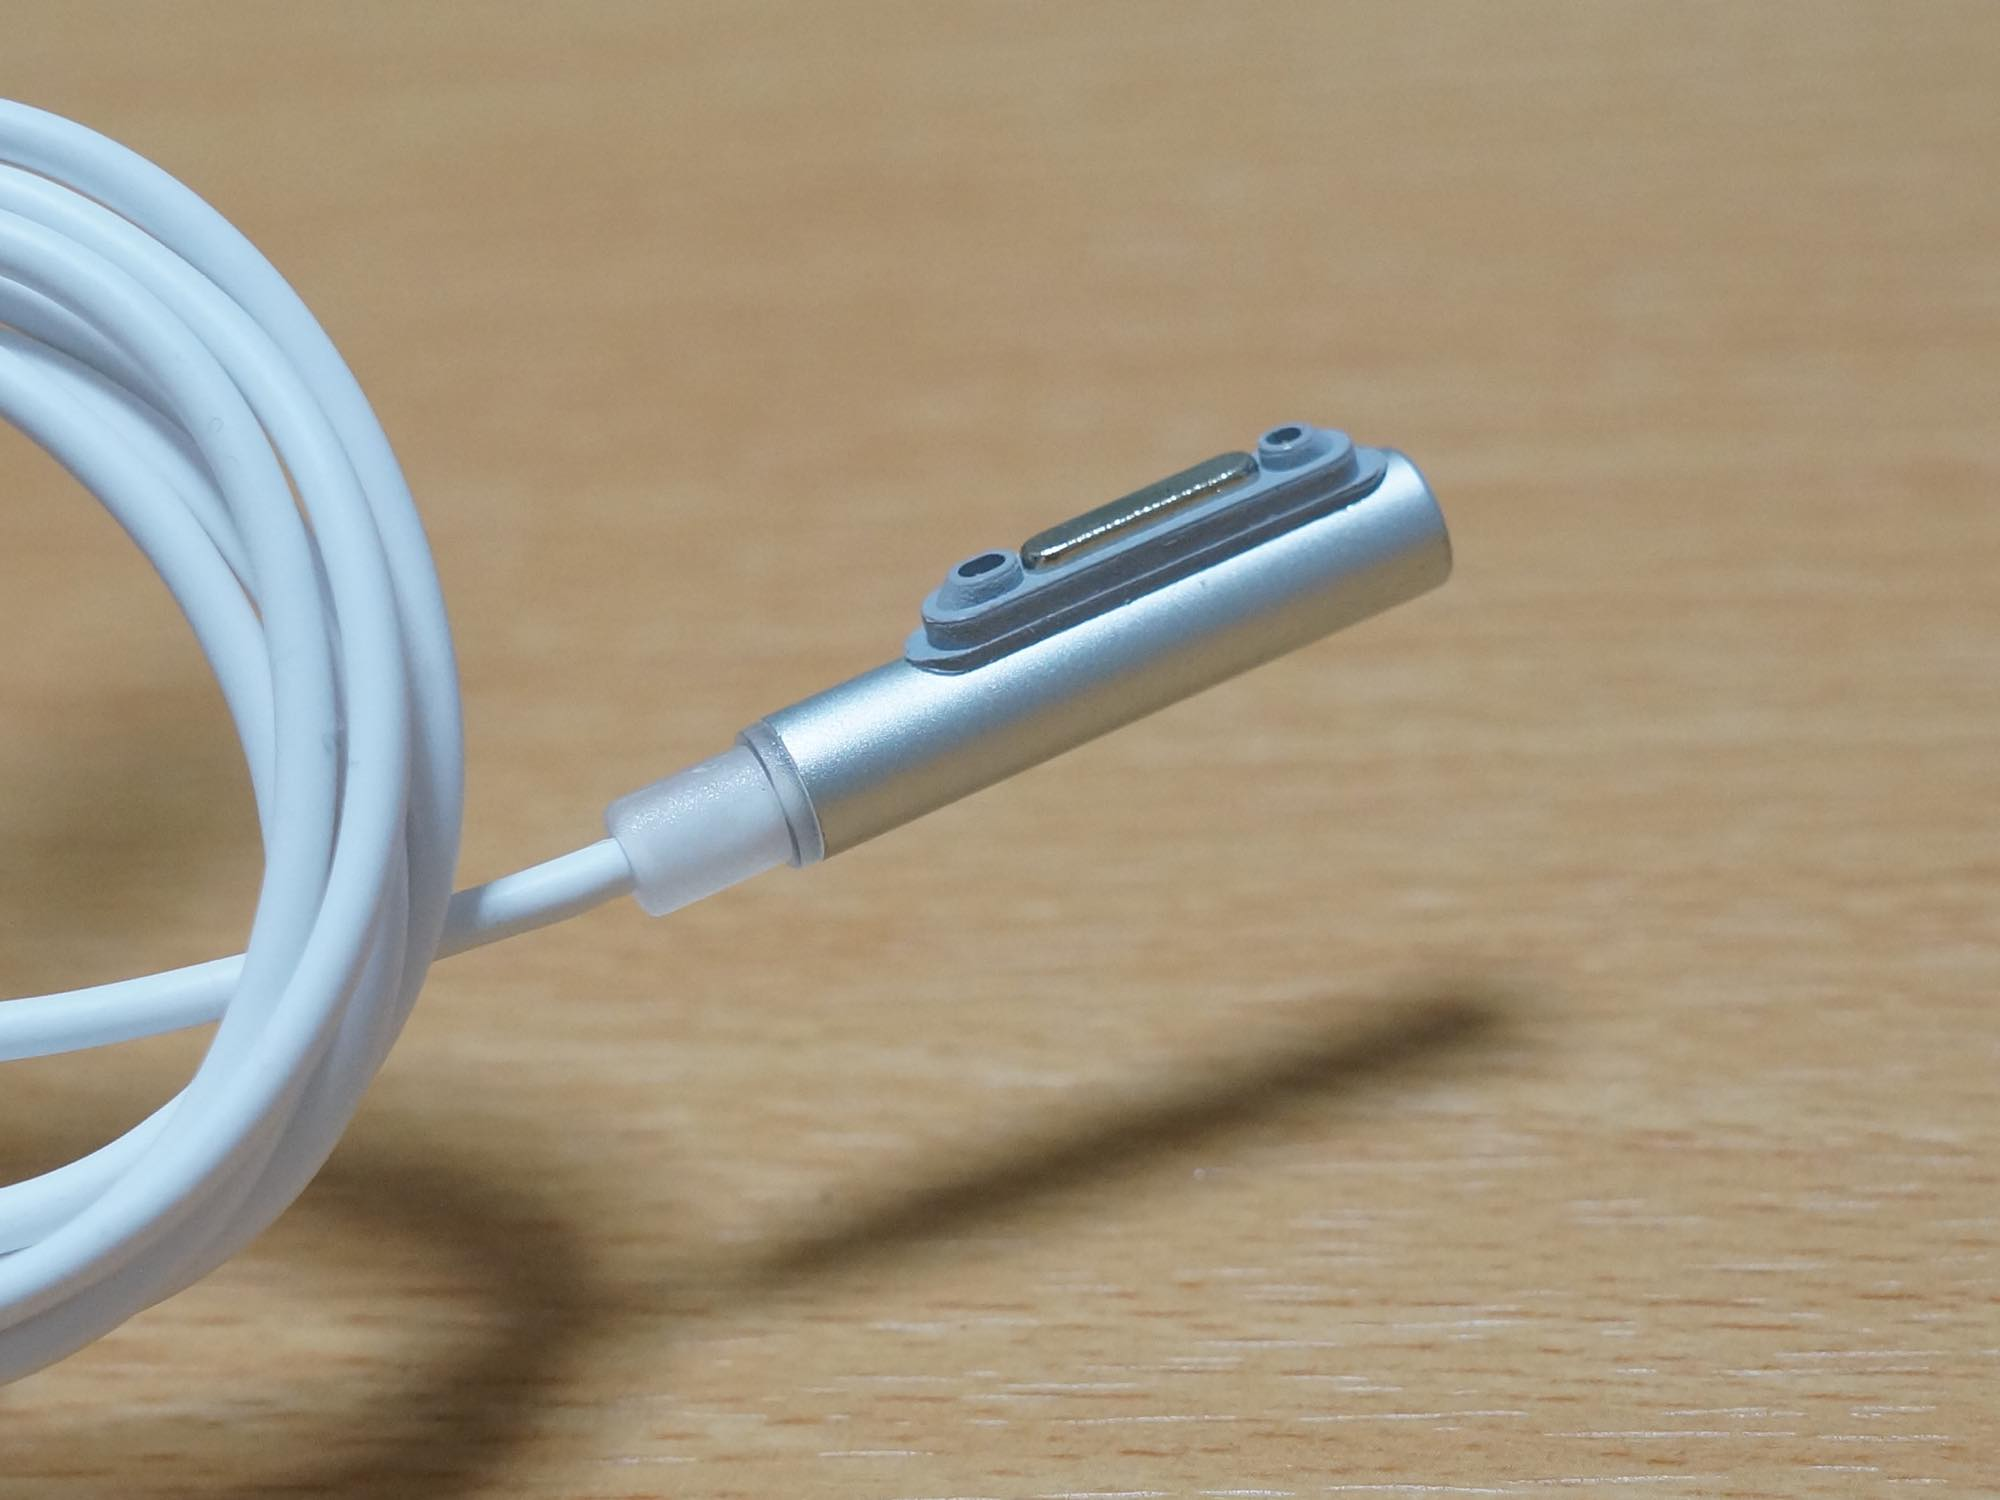 xperia-cable2